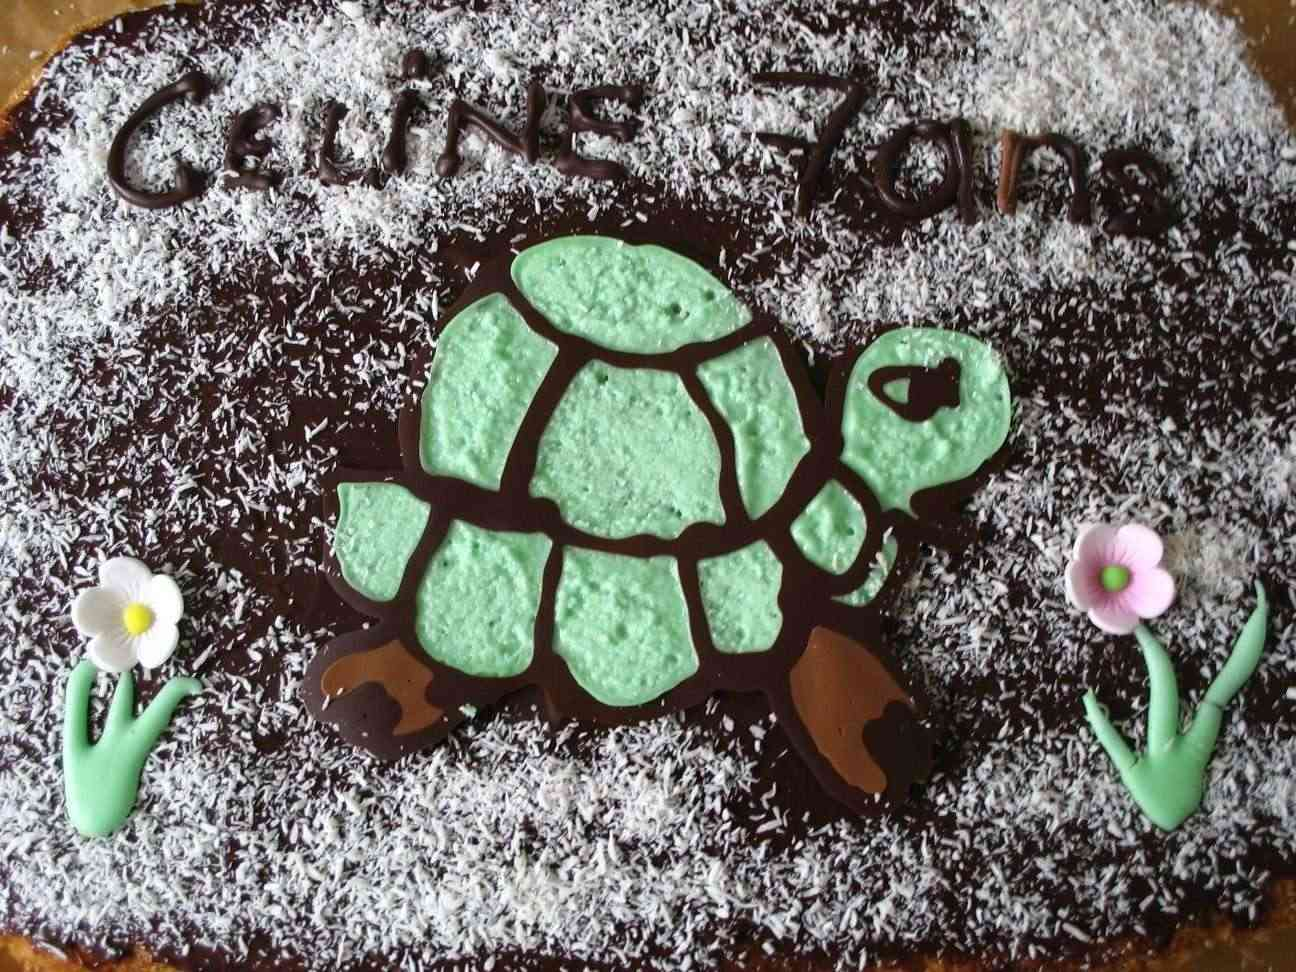 tortue - Page 2 Tortue12